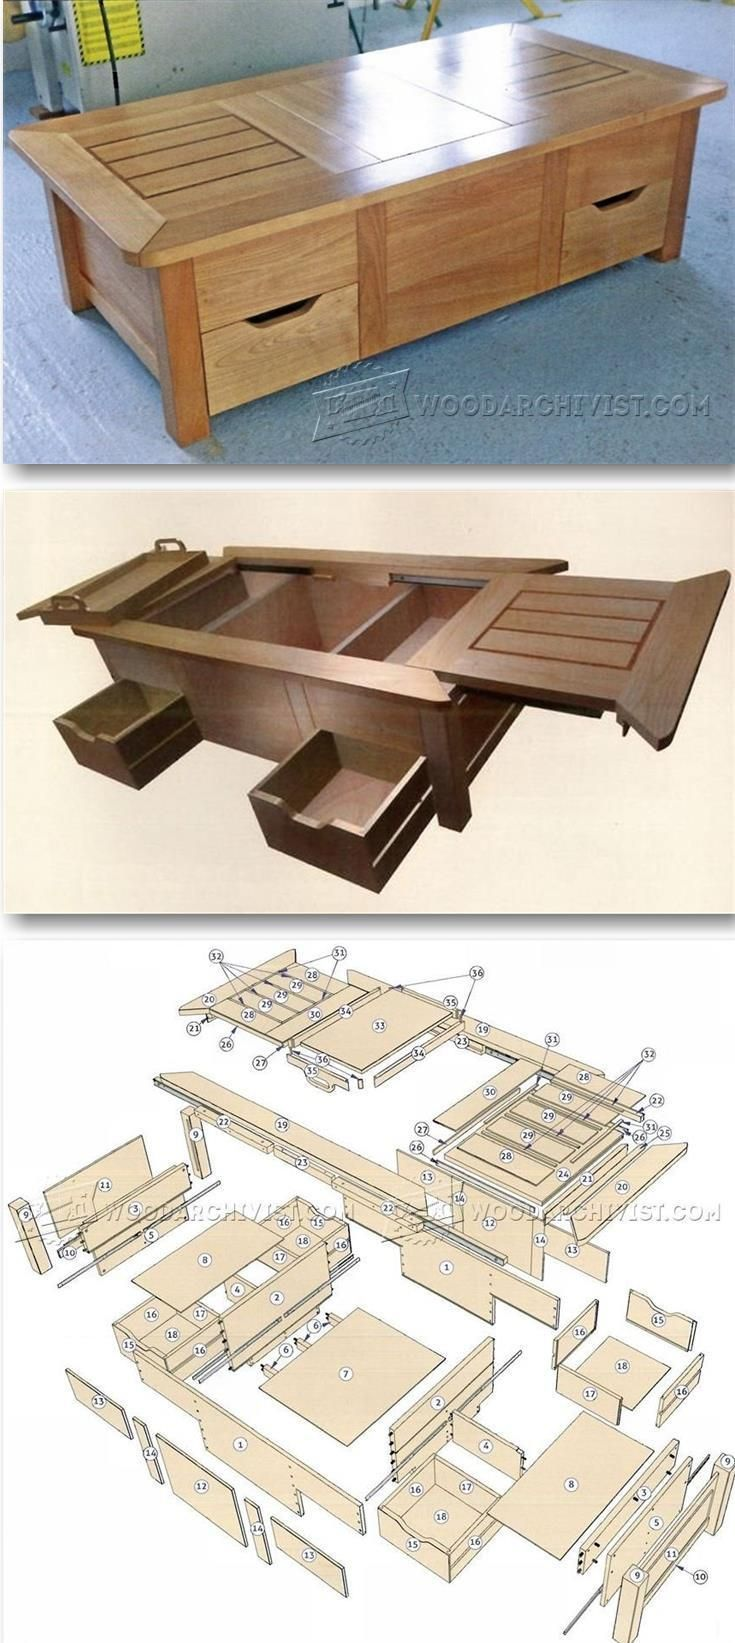 Beautiful And Easy To Make This Will Pay For Itself Http Profitable Woodworking Digimkts Love These Plans I Can Totally Do Myself